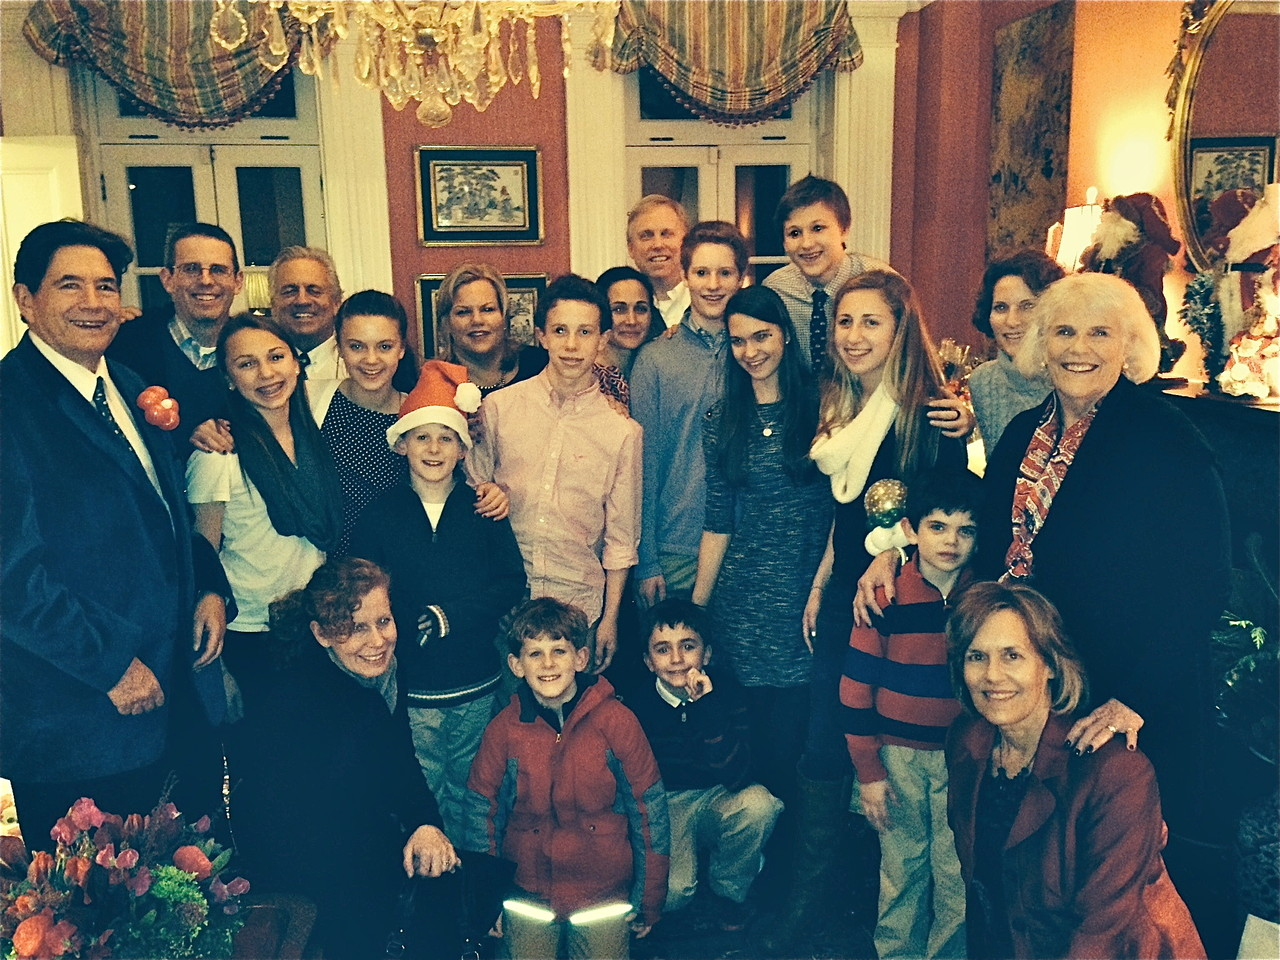 Dec. 20, 2013, Brooklyn. John Wagner, Josh Kagel, Gabby,Stuart Kagel Sr. Kate, Sean, Celeste Gudas, Liam, Allie & Stuart Jr., Noah Kagel, Ellie , Jack, Emma , Lisa , Jane  Kneeling in front:  Julie (Josh's wife); Connor, Stuart III, Sam, & Lorraine Gudas